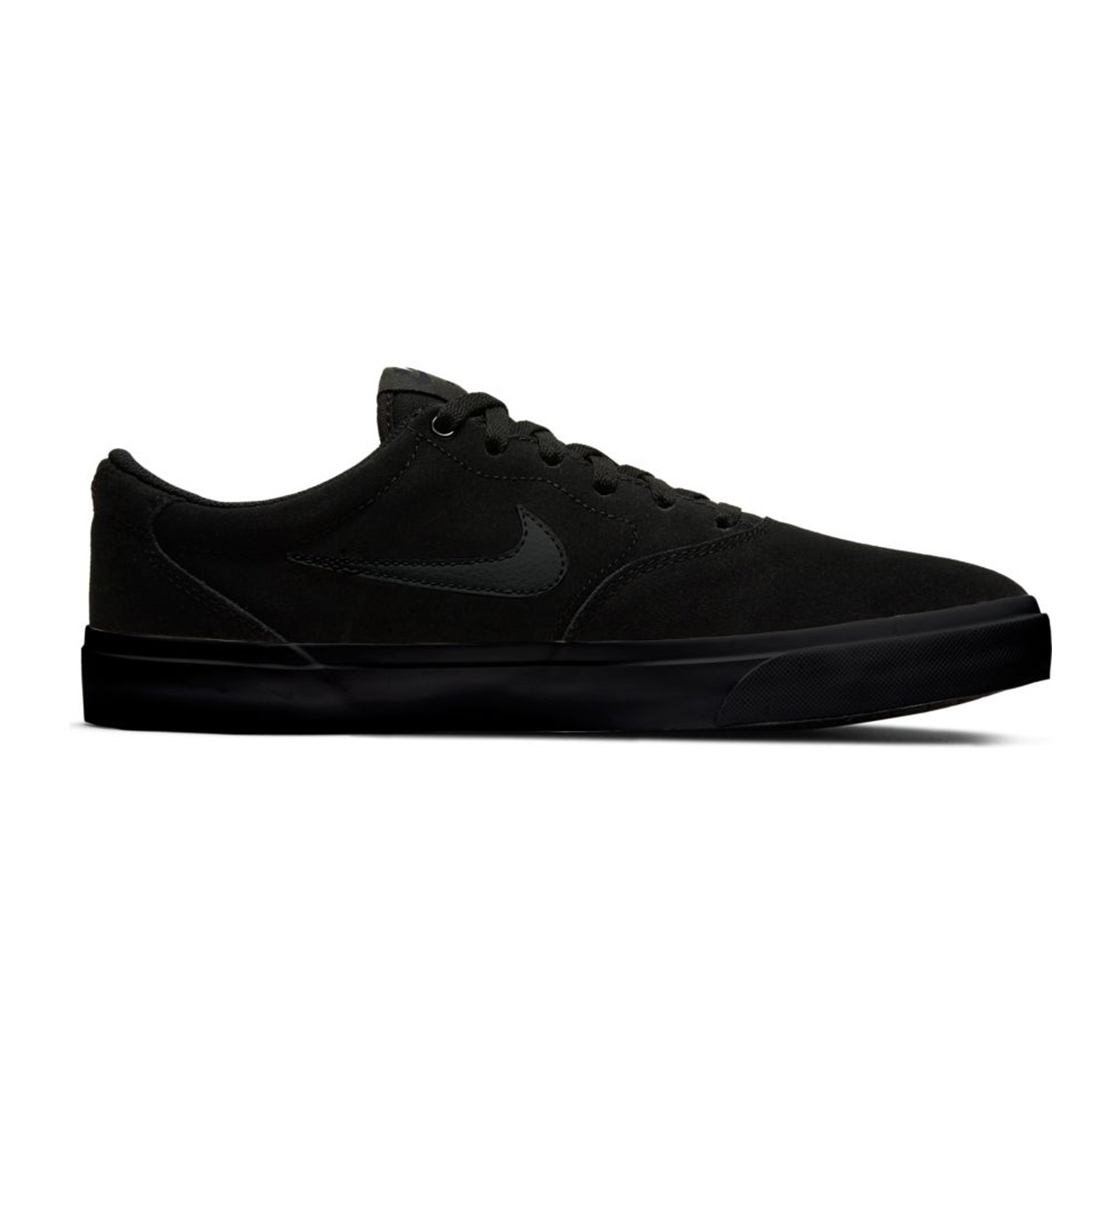 Nike Ανδρικό Παπούτσι Μόδας Fw20 Nike Sb Charge Suede CT3463